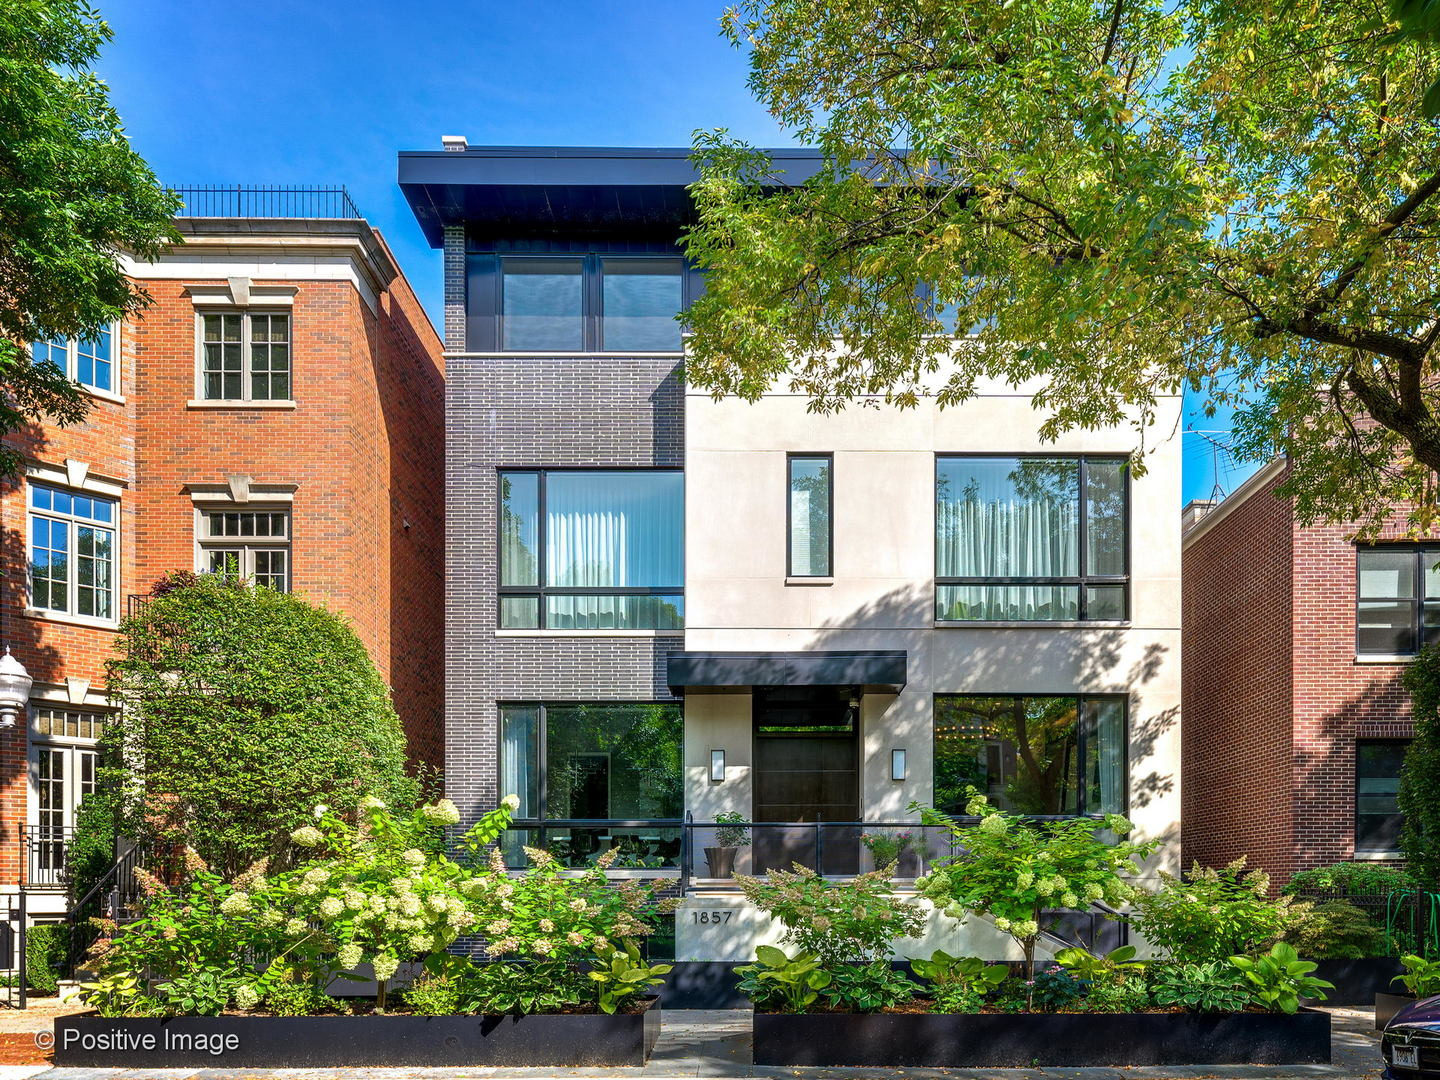 1857 N Orchard Street, Chicago, IL 60614